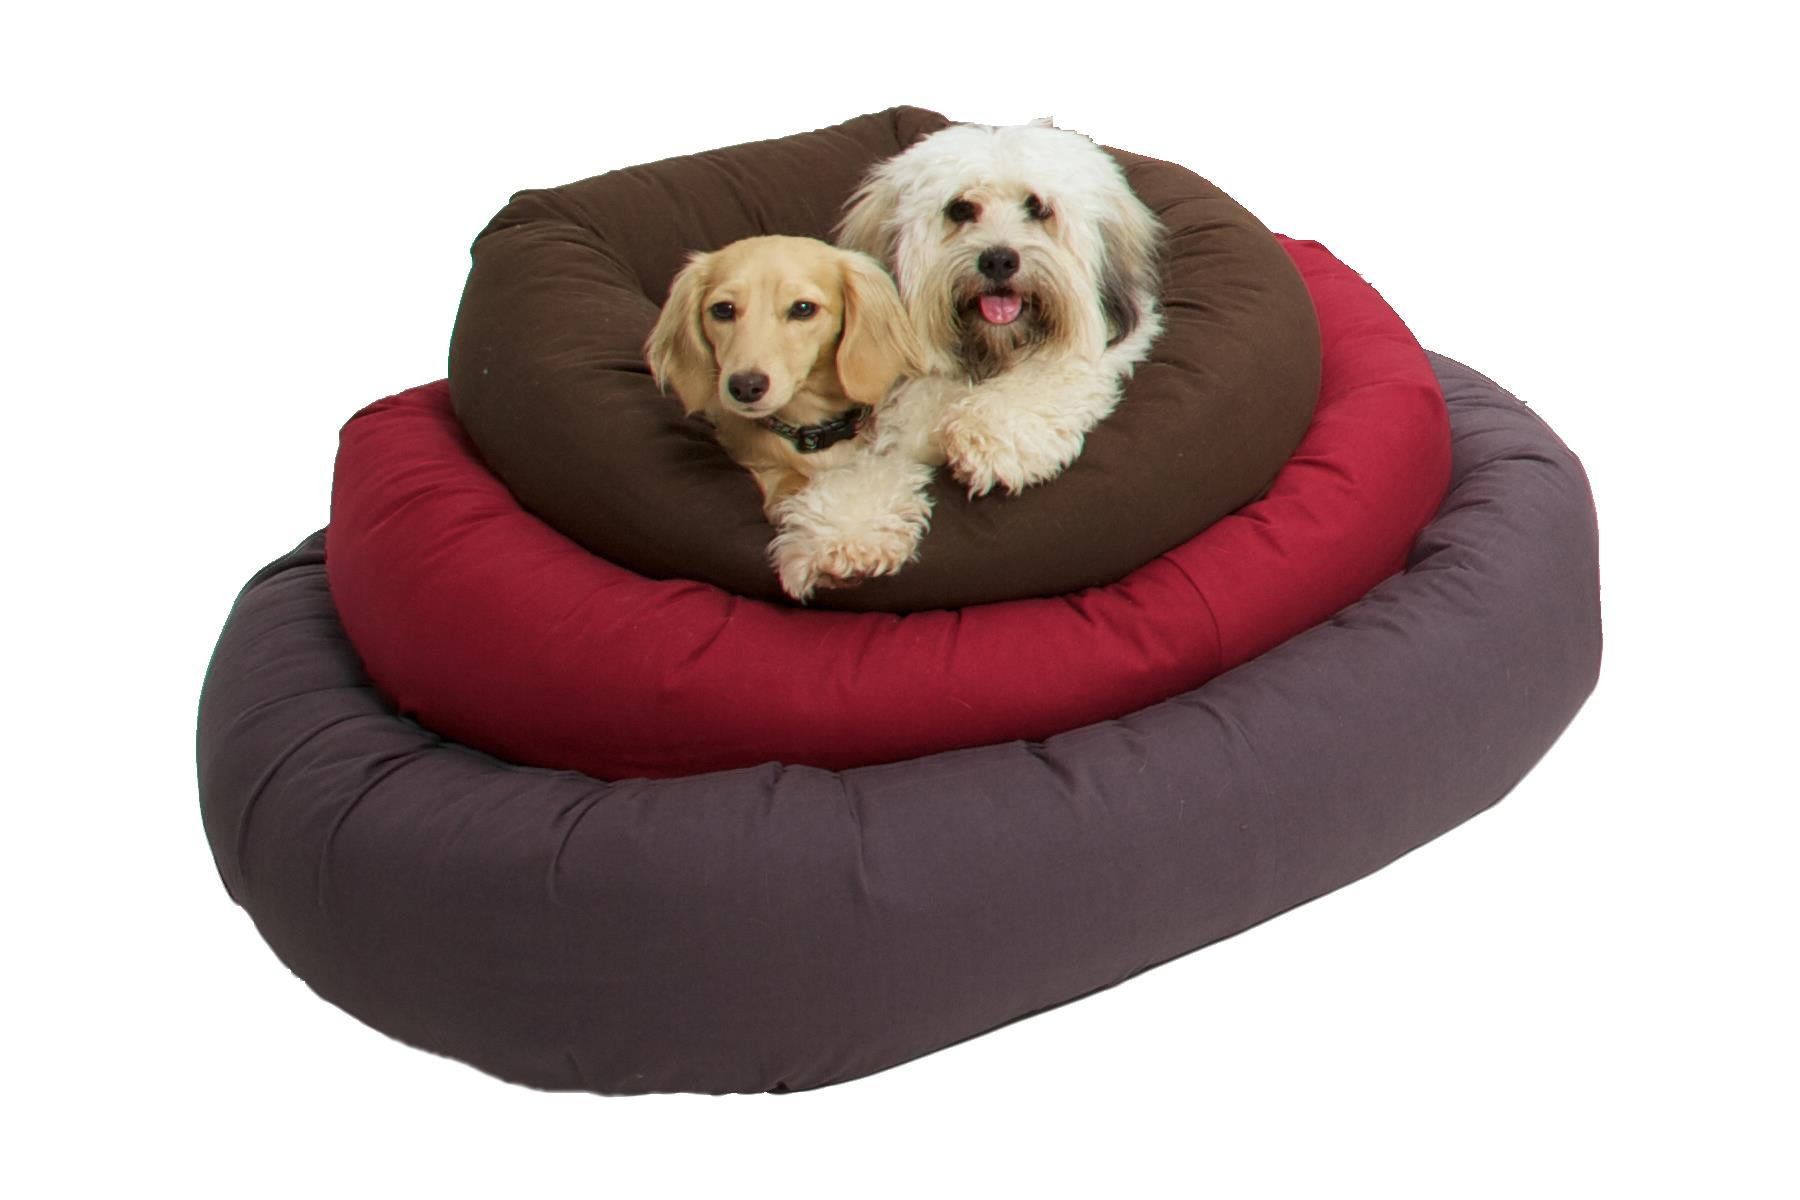 Dog Gone Smart Donut Bed For Dogs From 89 95 Bowhouse